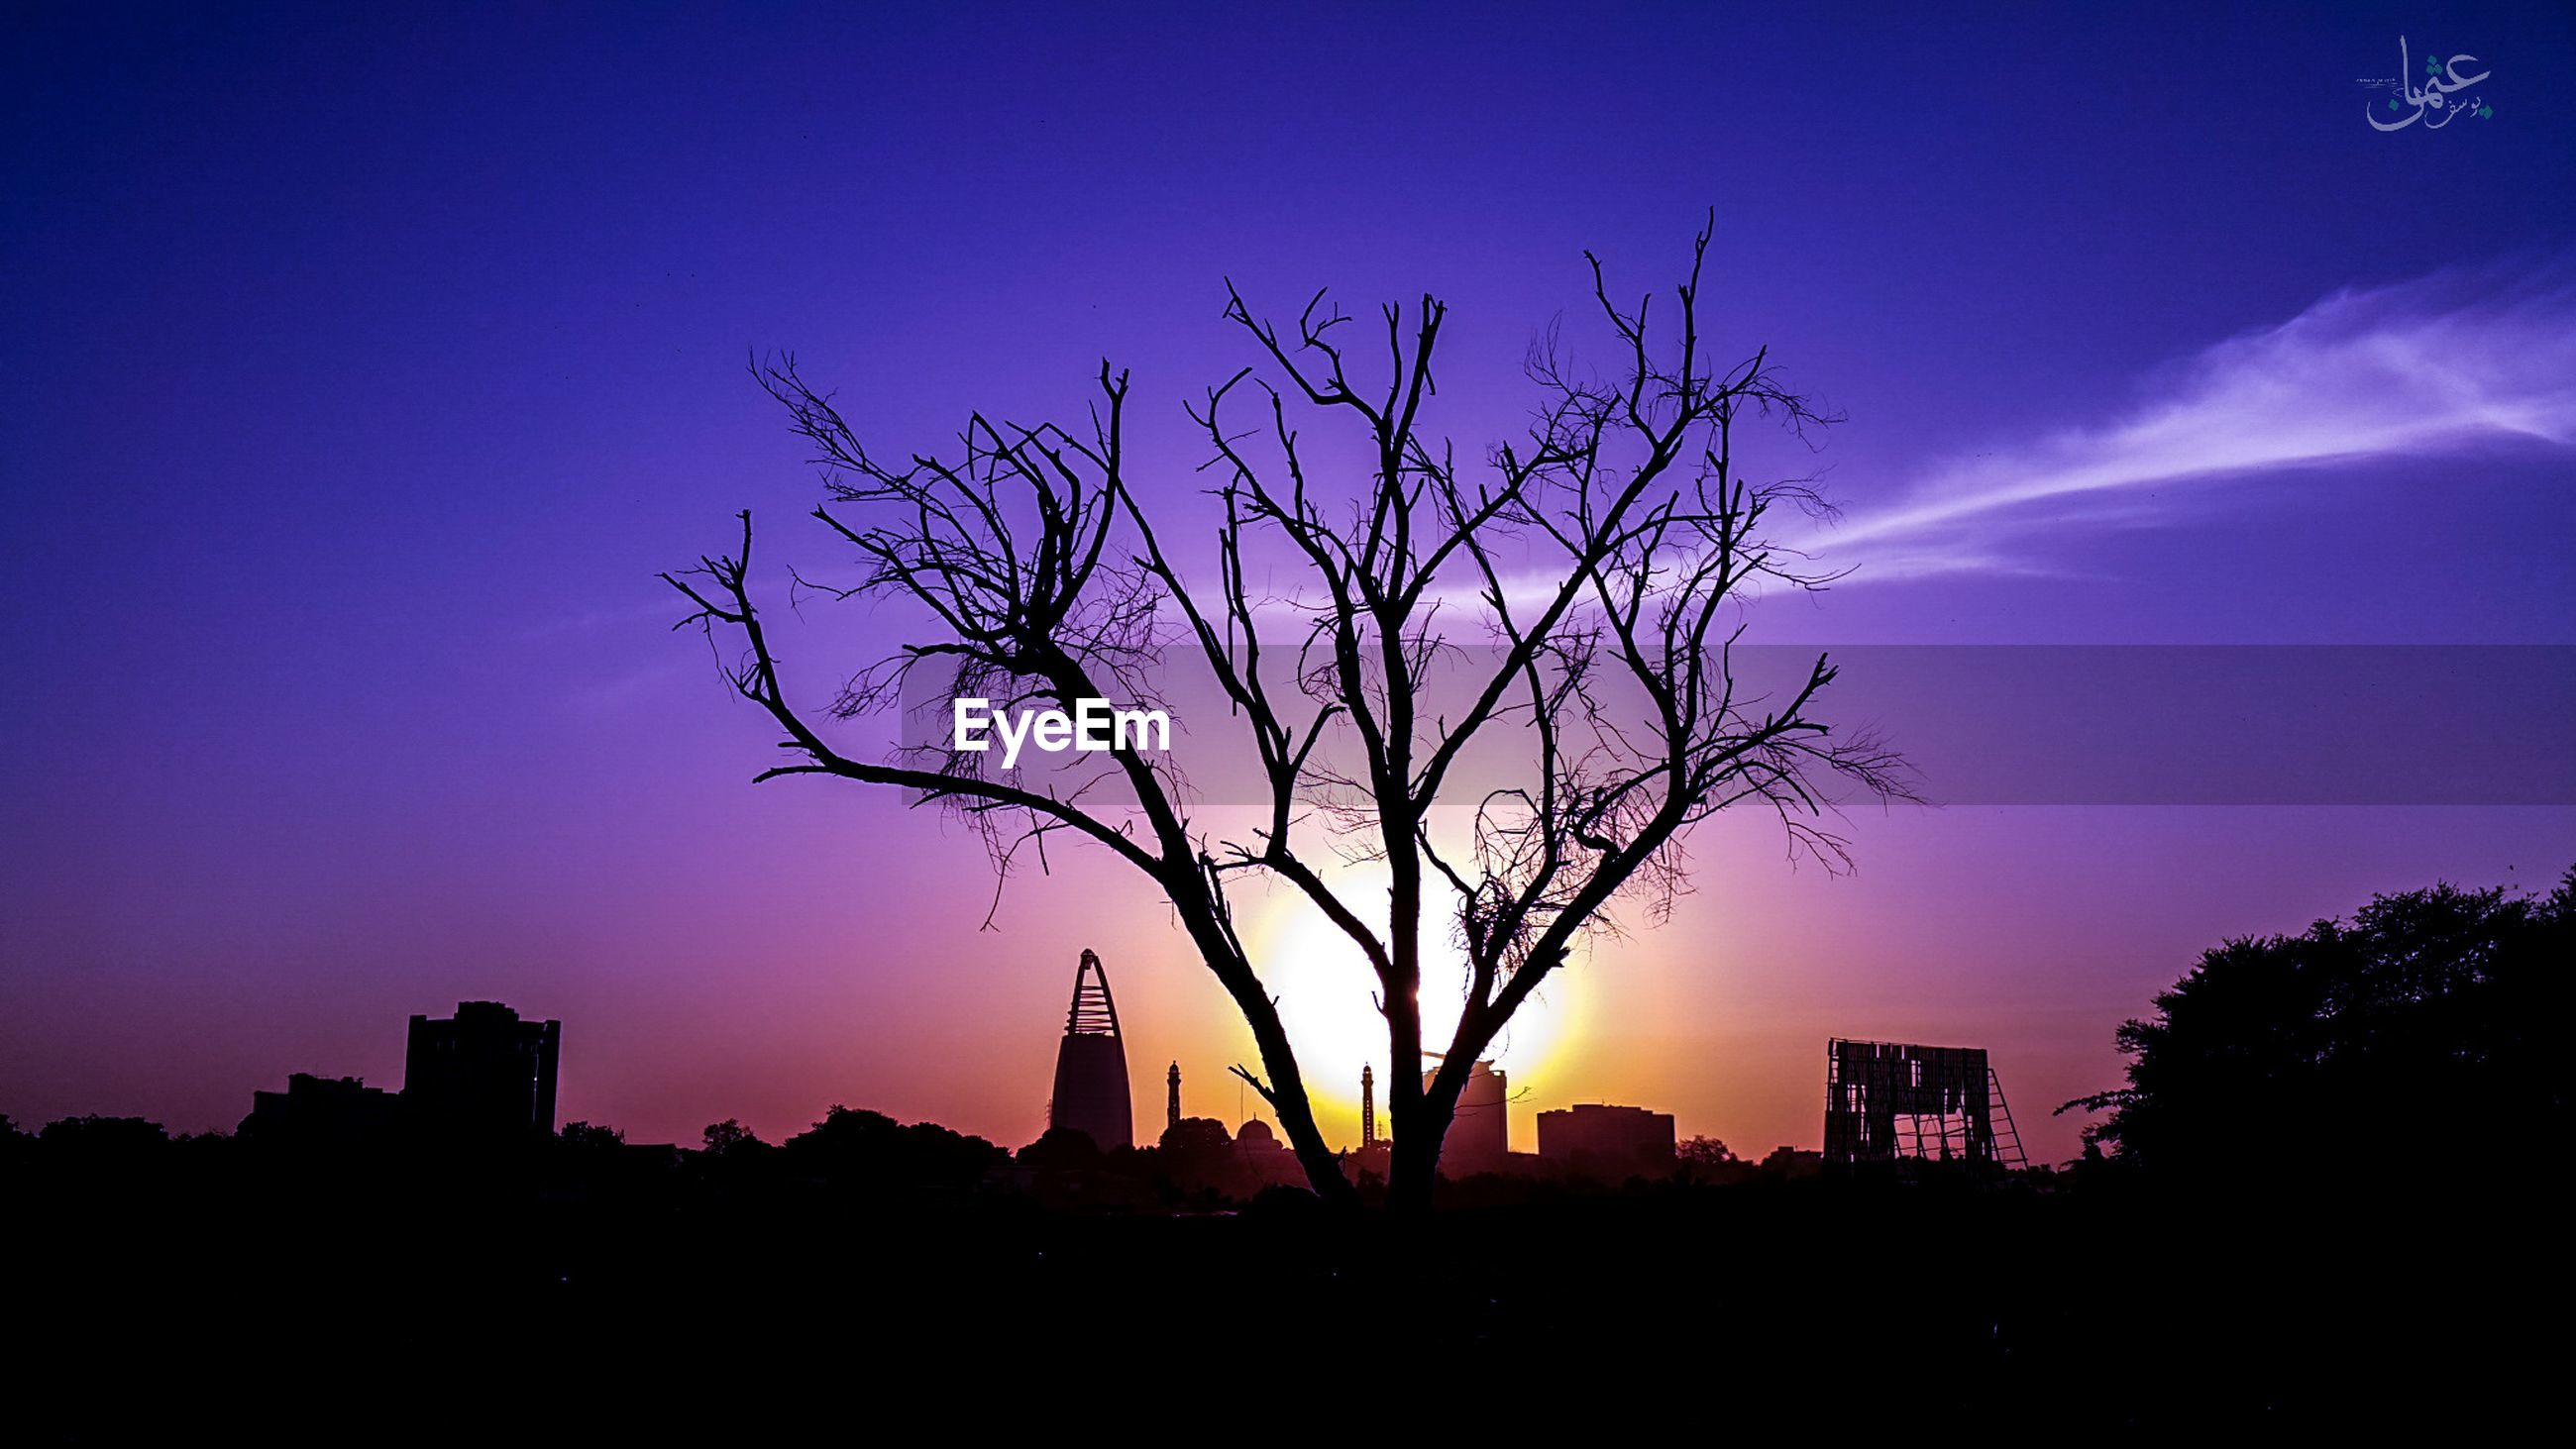 sunset, silhouette, architecture, tree, city, building exterior, sky, dusk, bare tree, built structure, no people, outdoors, nature, skyscraper, cityscape, growth, beauty in nature